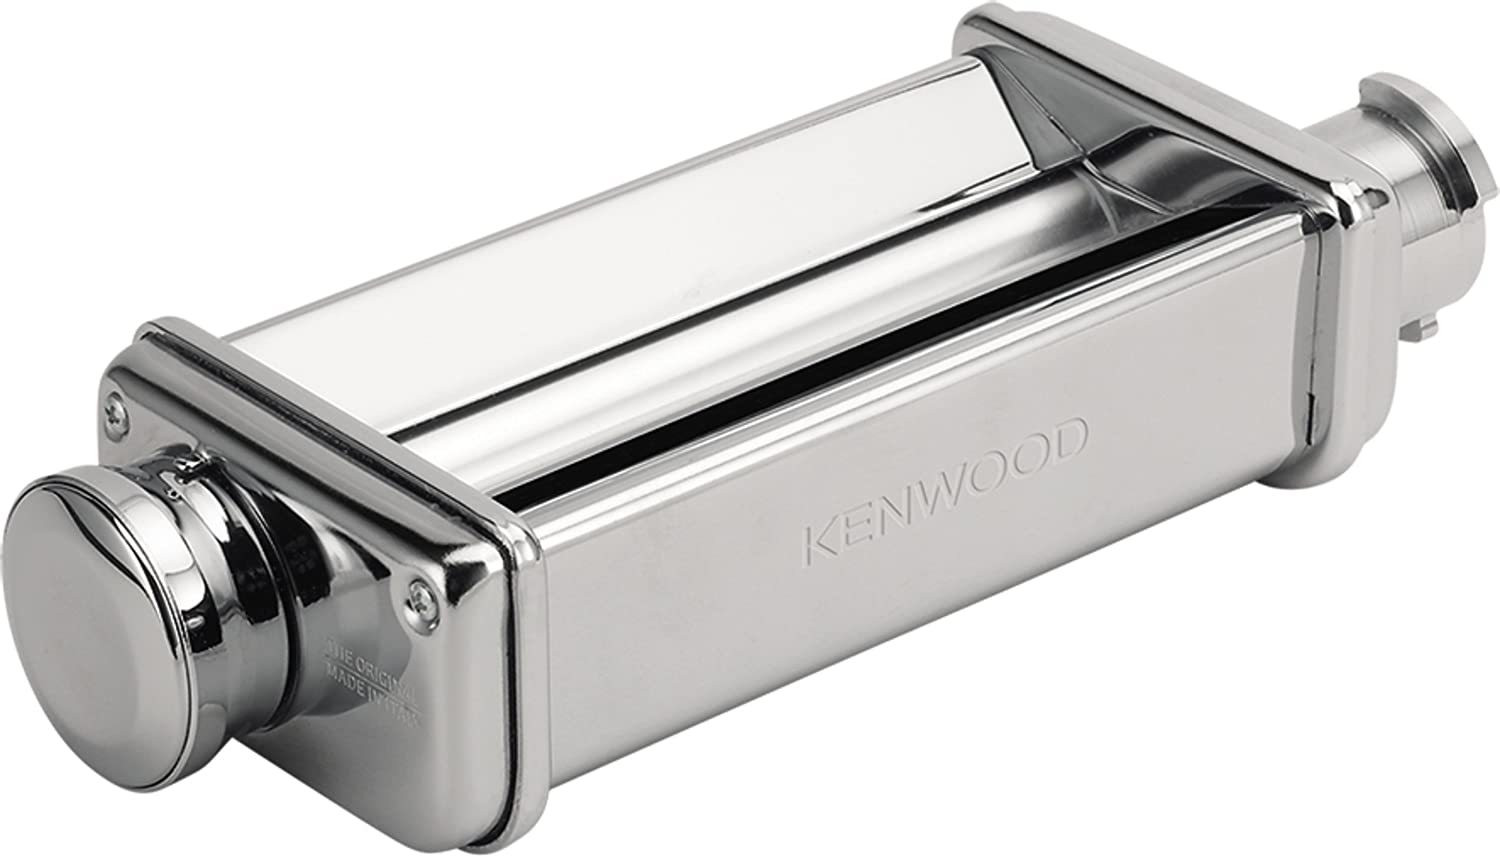 Kenwood KAX980ME Chef Pasta Attachment, Silver